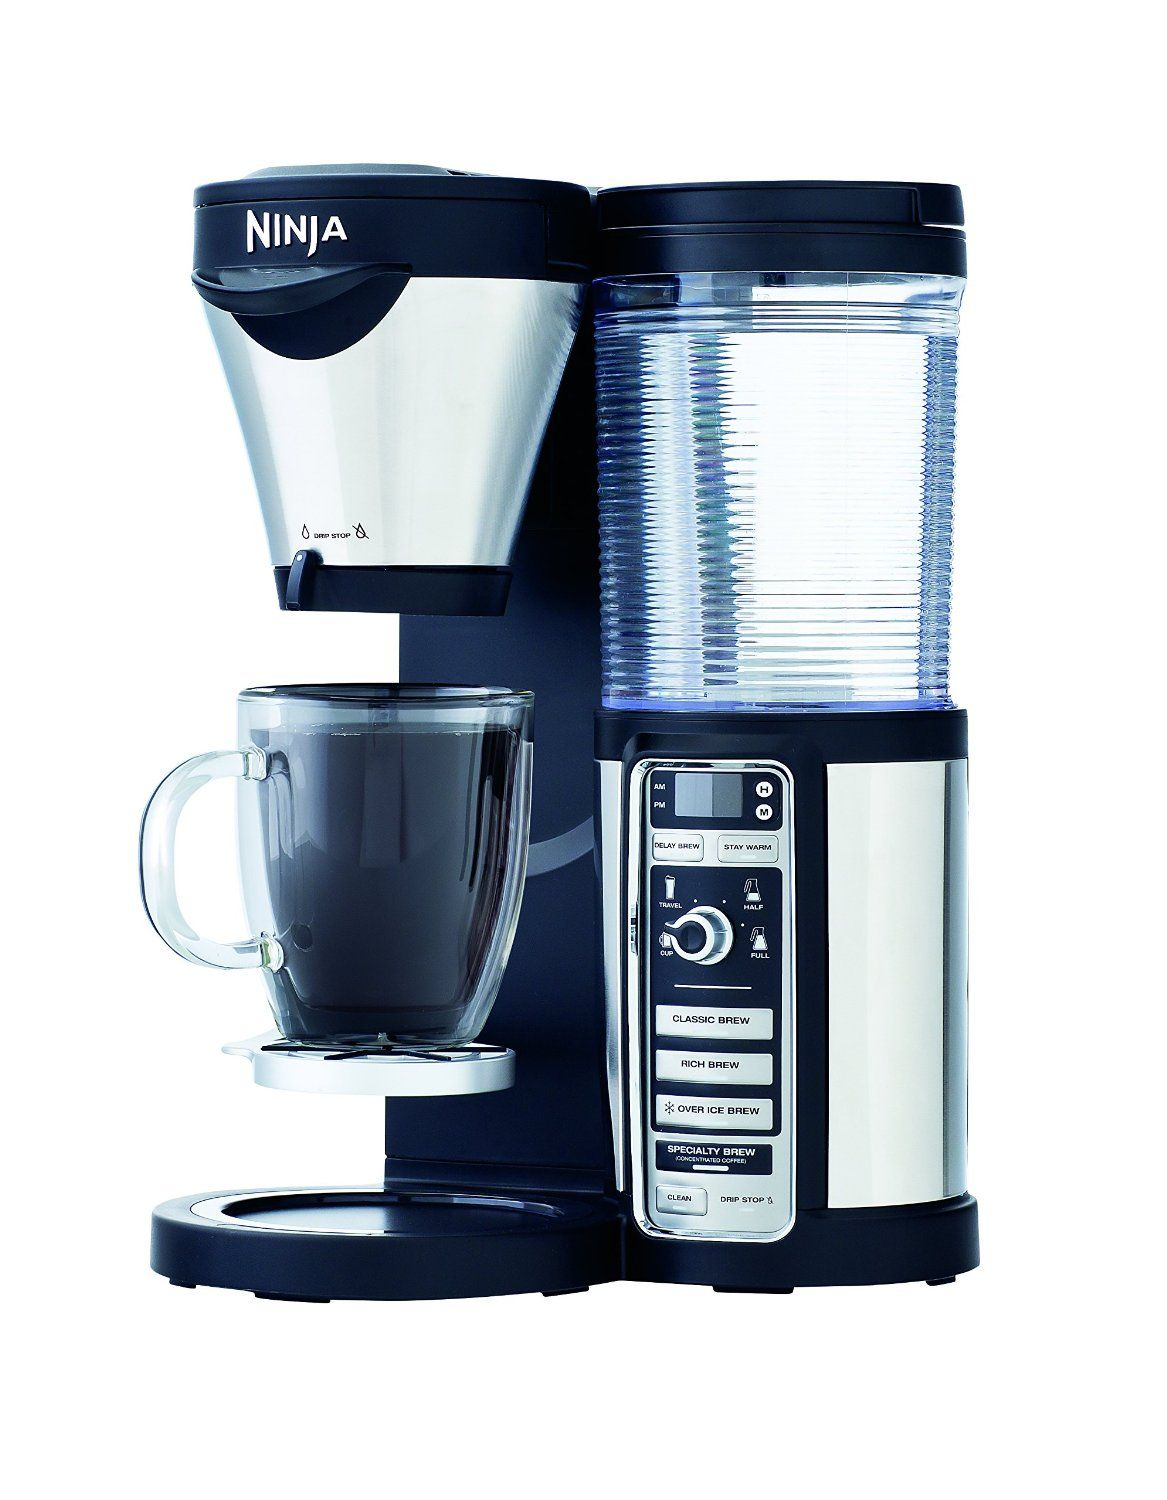 Ninja Coffee Bar Brewer Ninja coffee bar, Ninja coffee